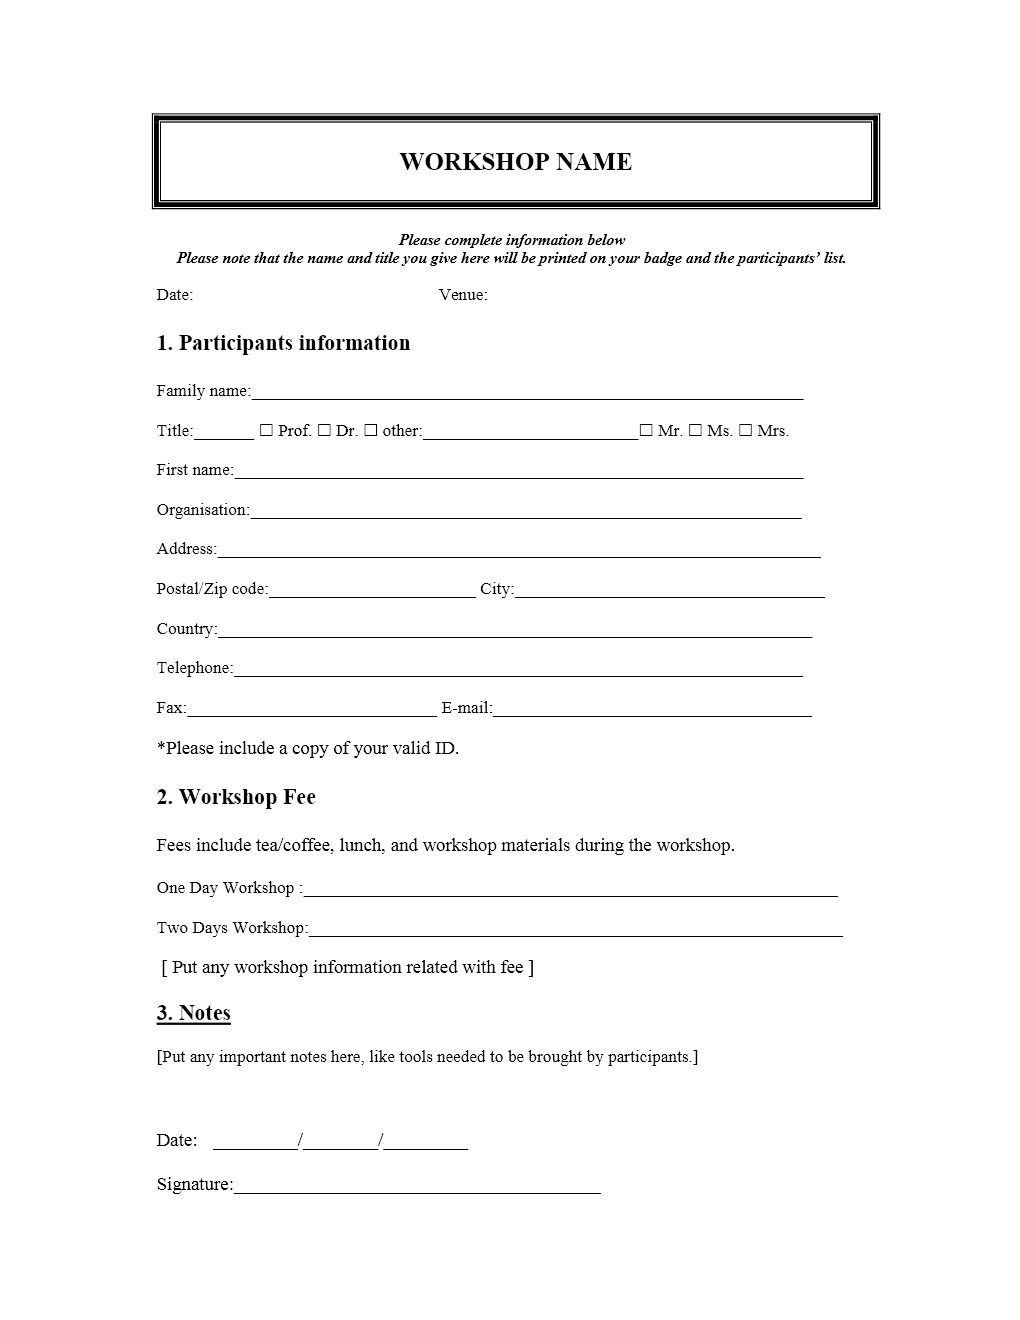 Registration form workshop registration form pronofoot35fo Image collections